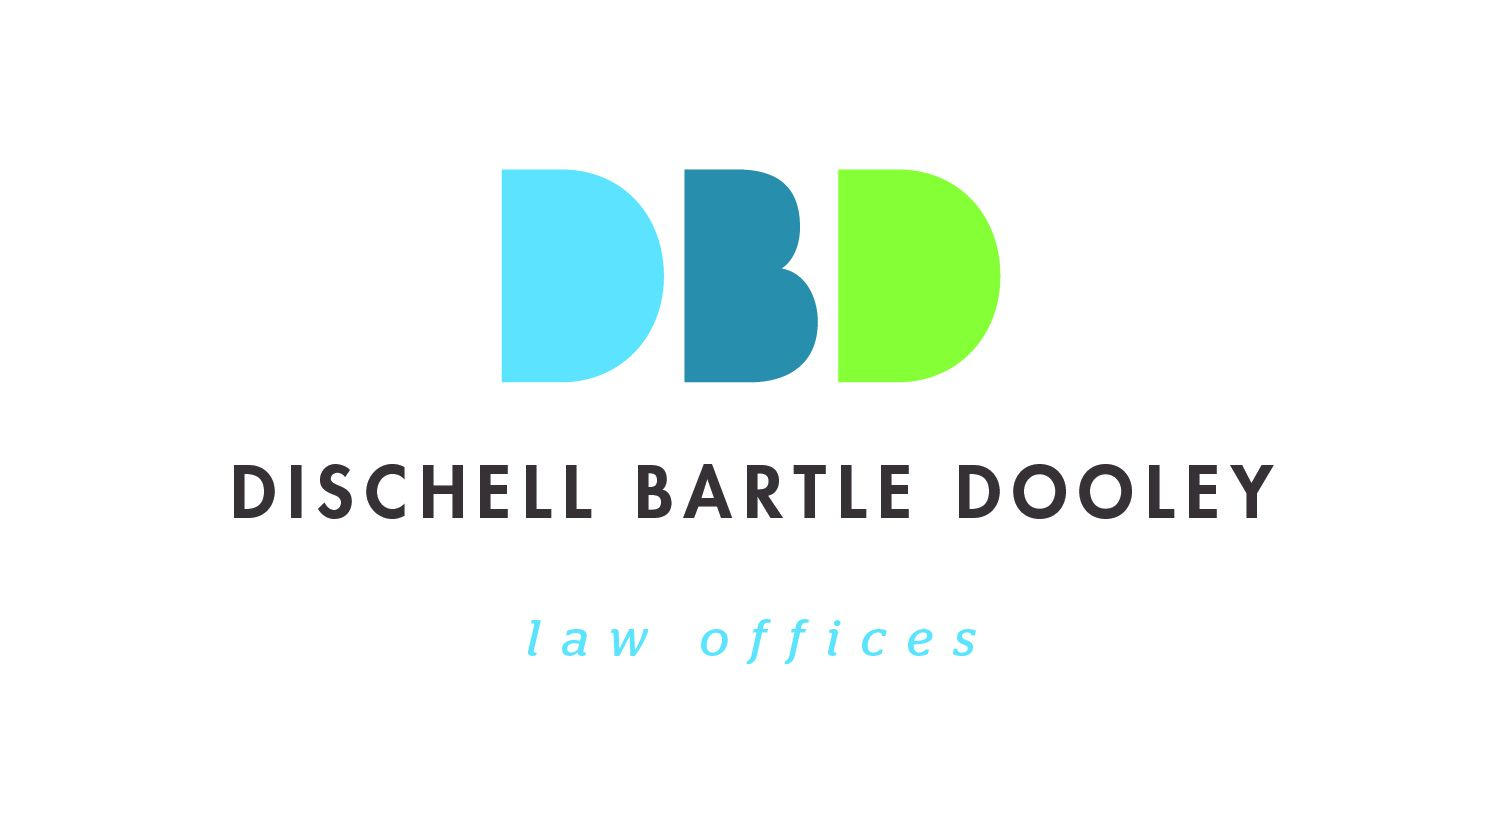 DischellBartleDooley Logo